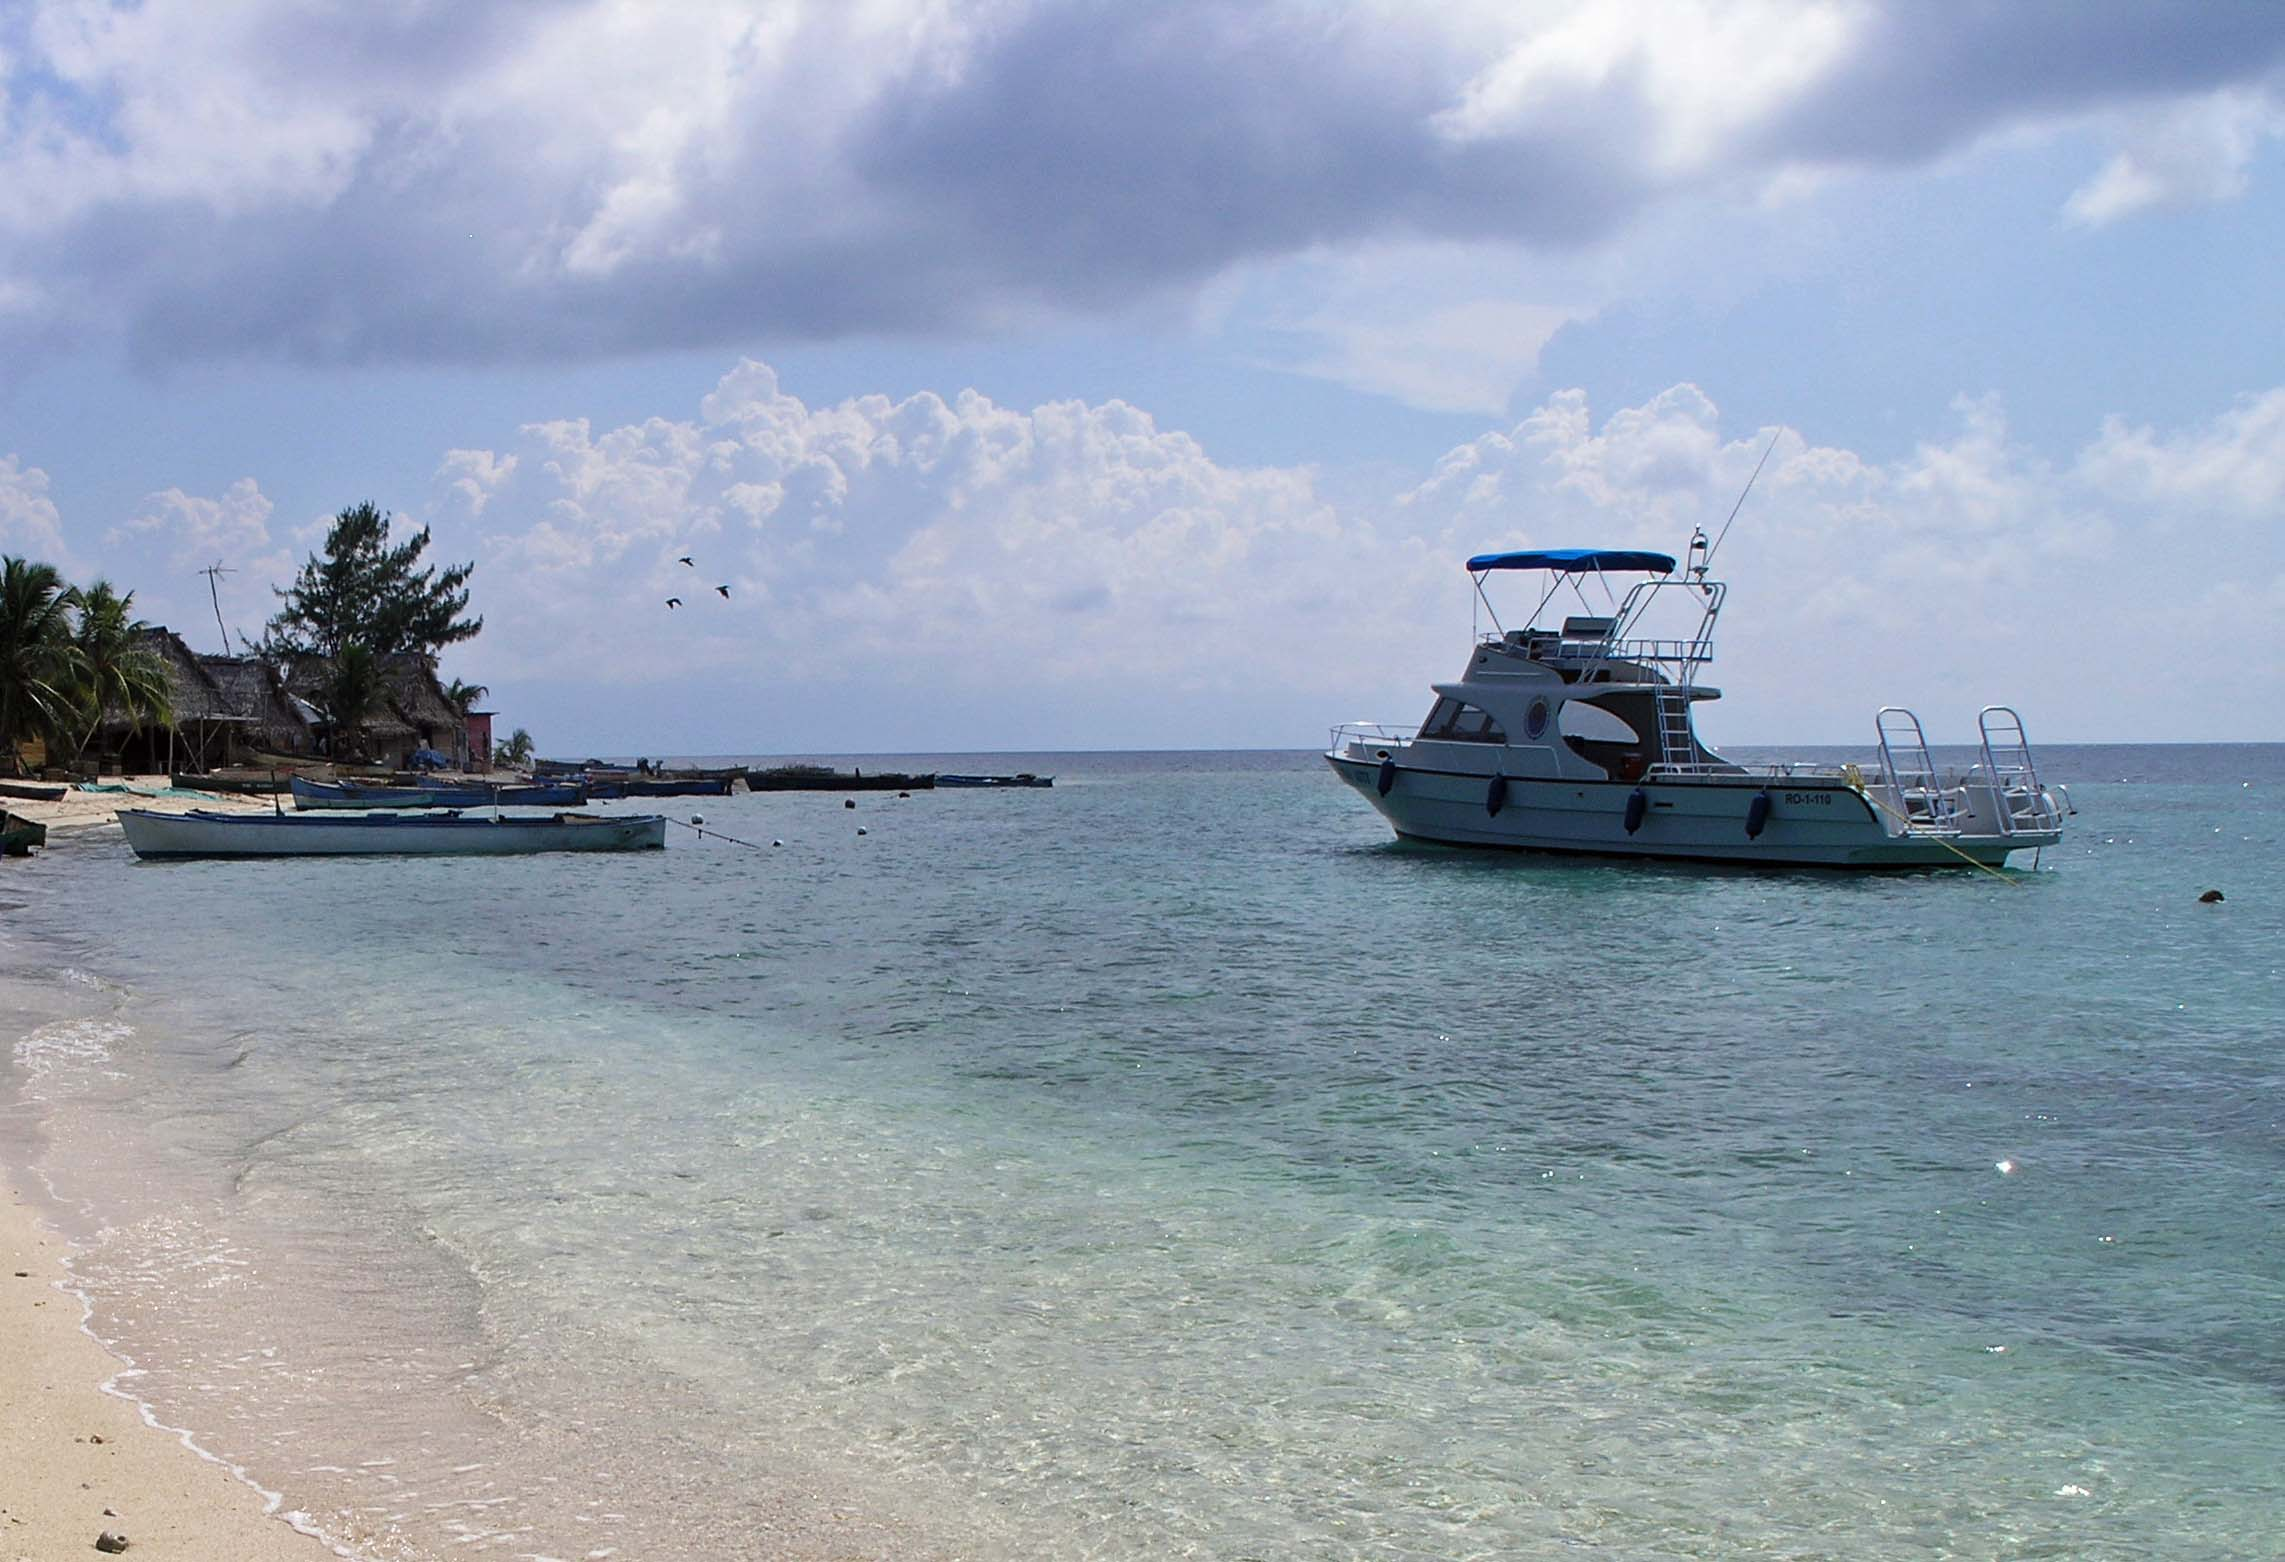 Cayo Cochinos, Hog Islands. Day trips to amazing places